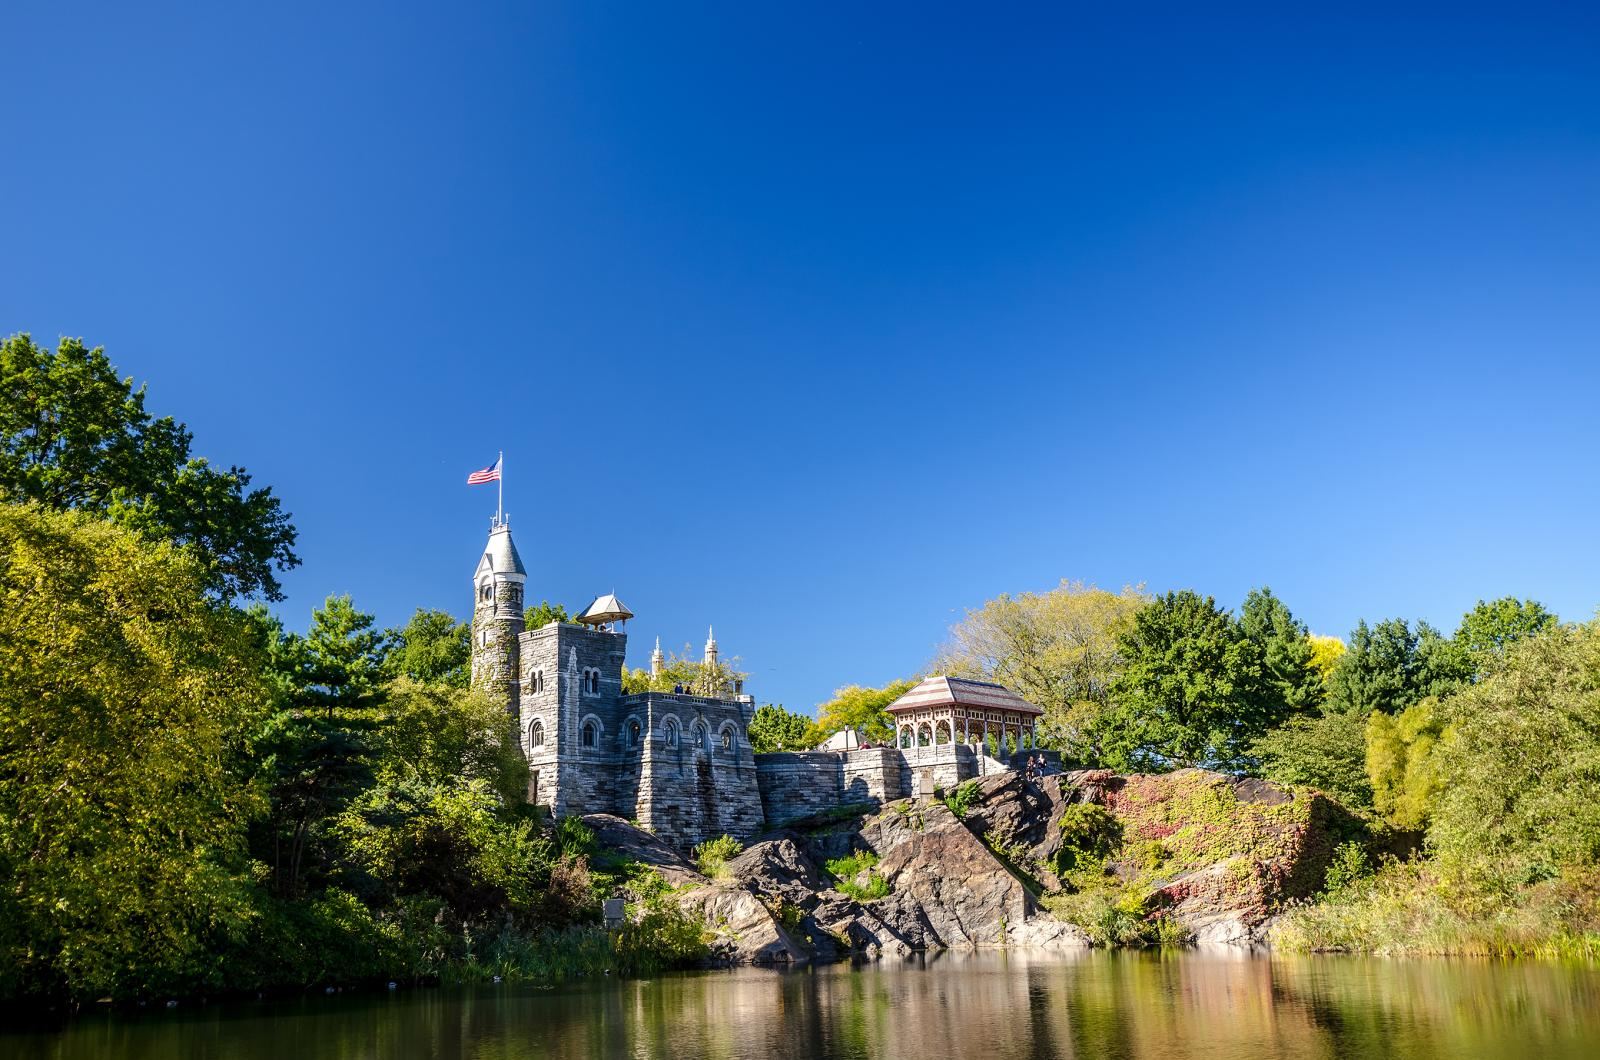 Belvedere Castle in central park in Newyork city, New York City, USA